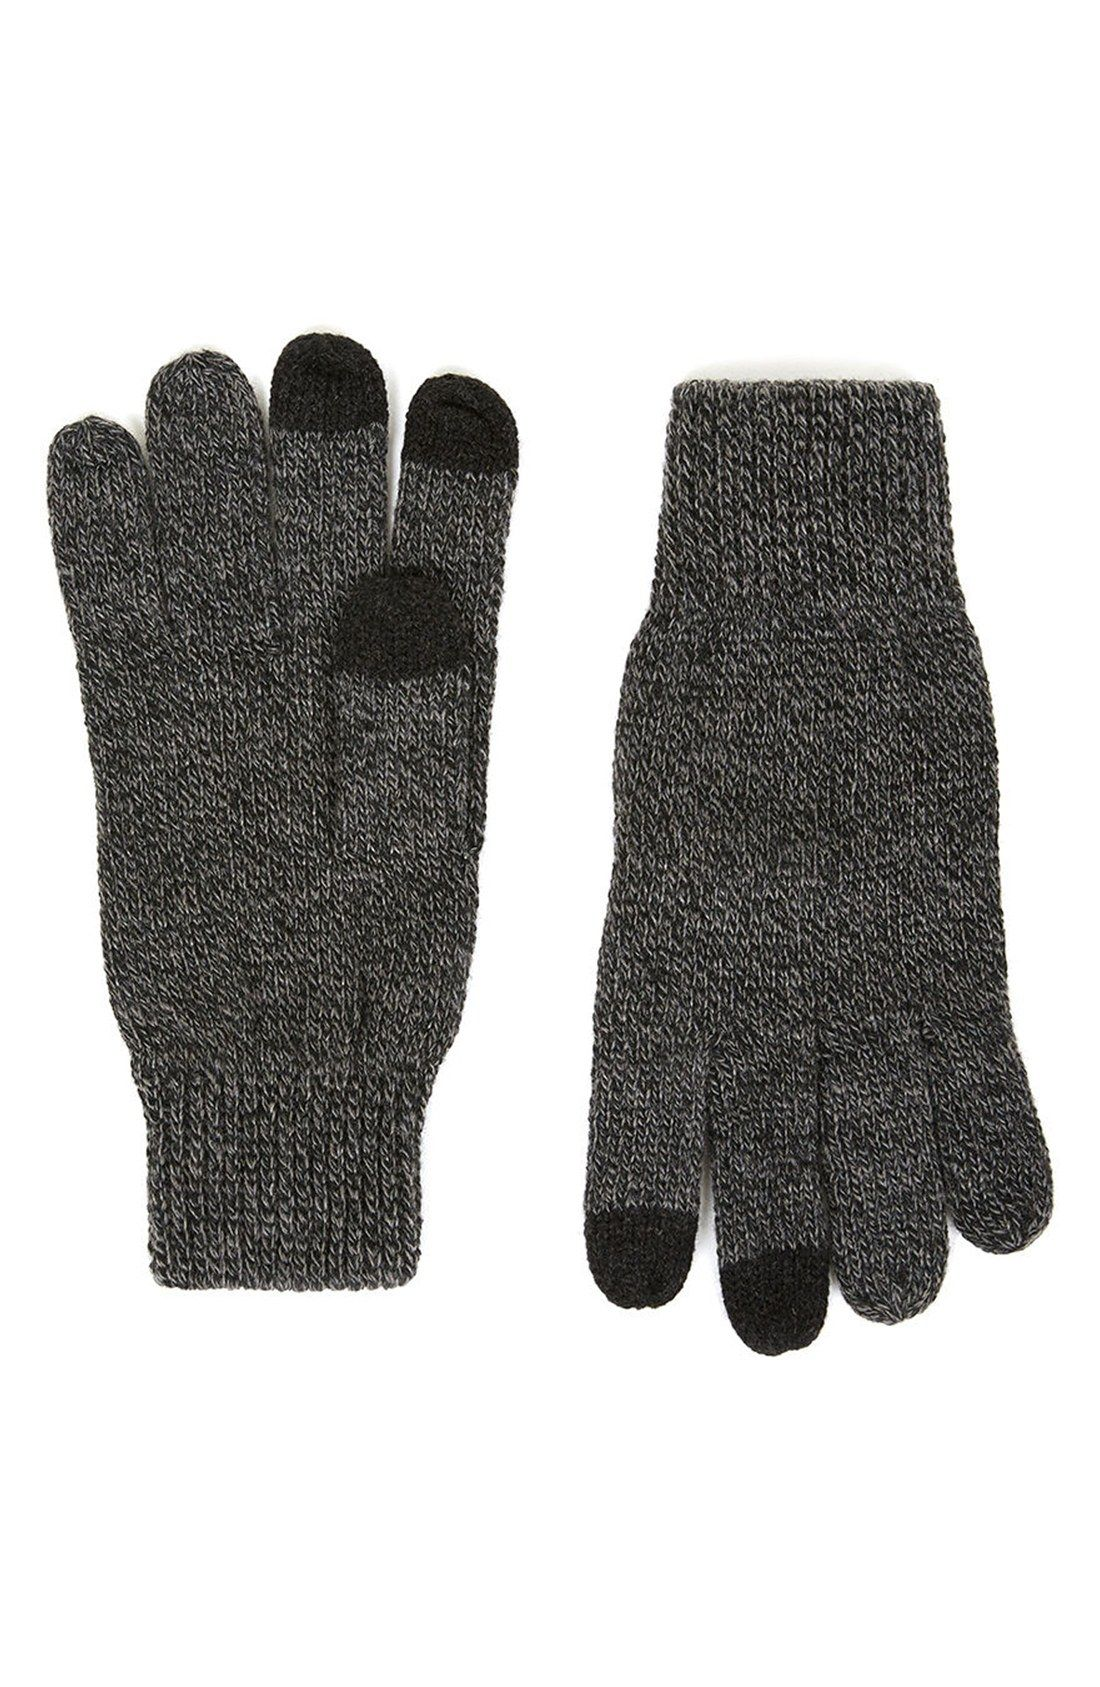 Mens gloves topman - Topman Knit Tech Gloves